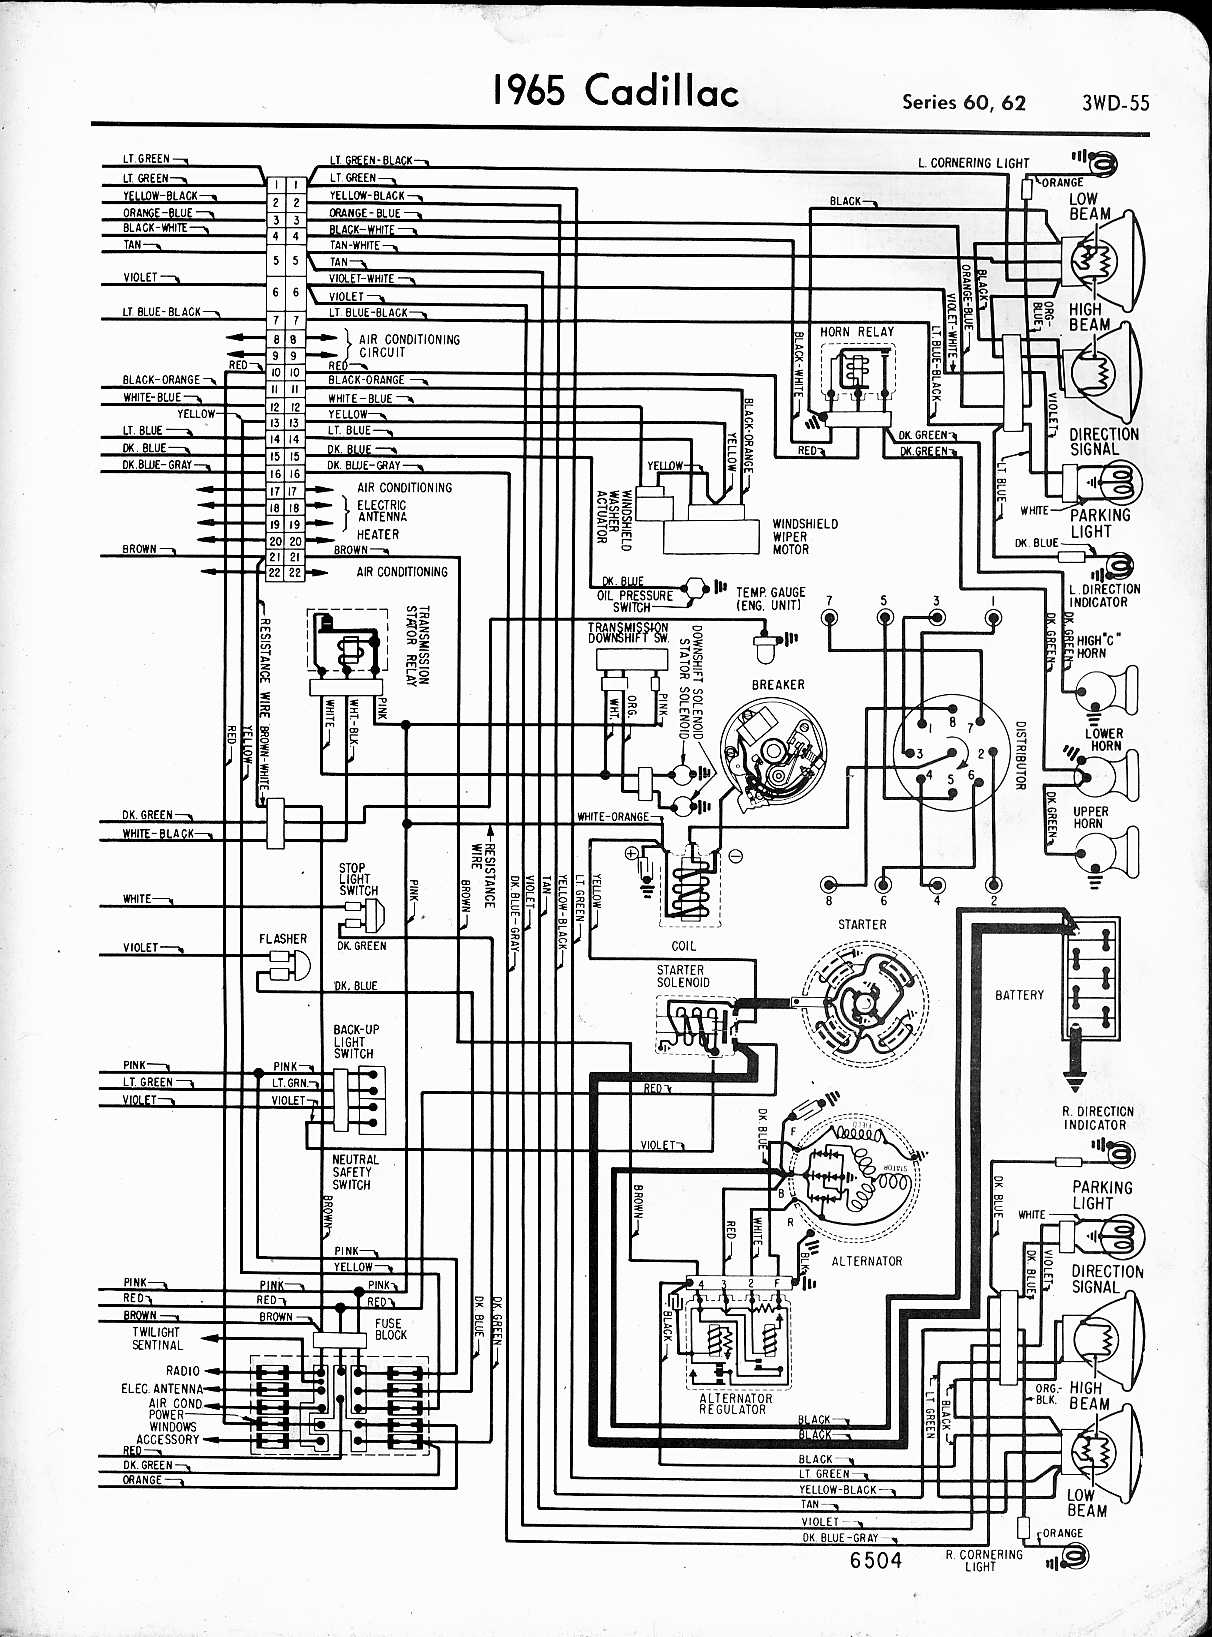 2003 cadillac deville window wiring diagram electrical diagram rh zavoral genealogy com